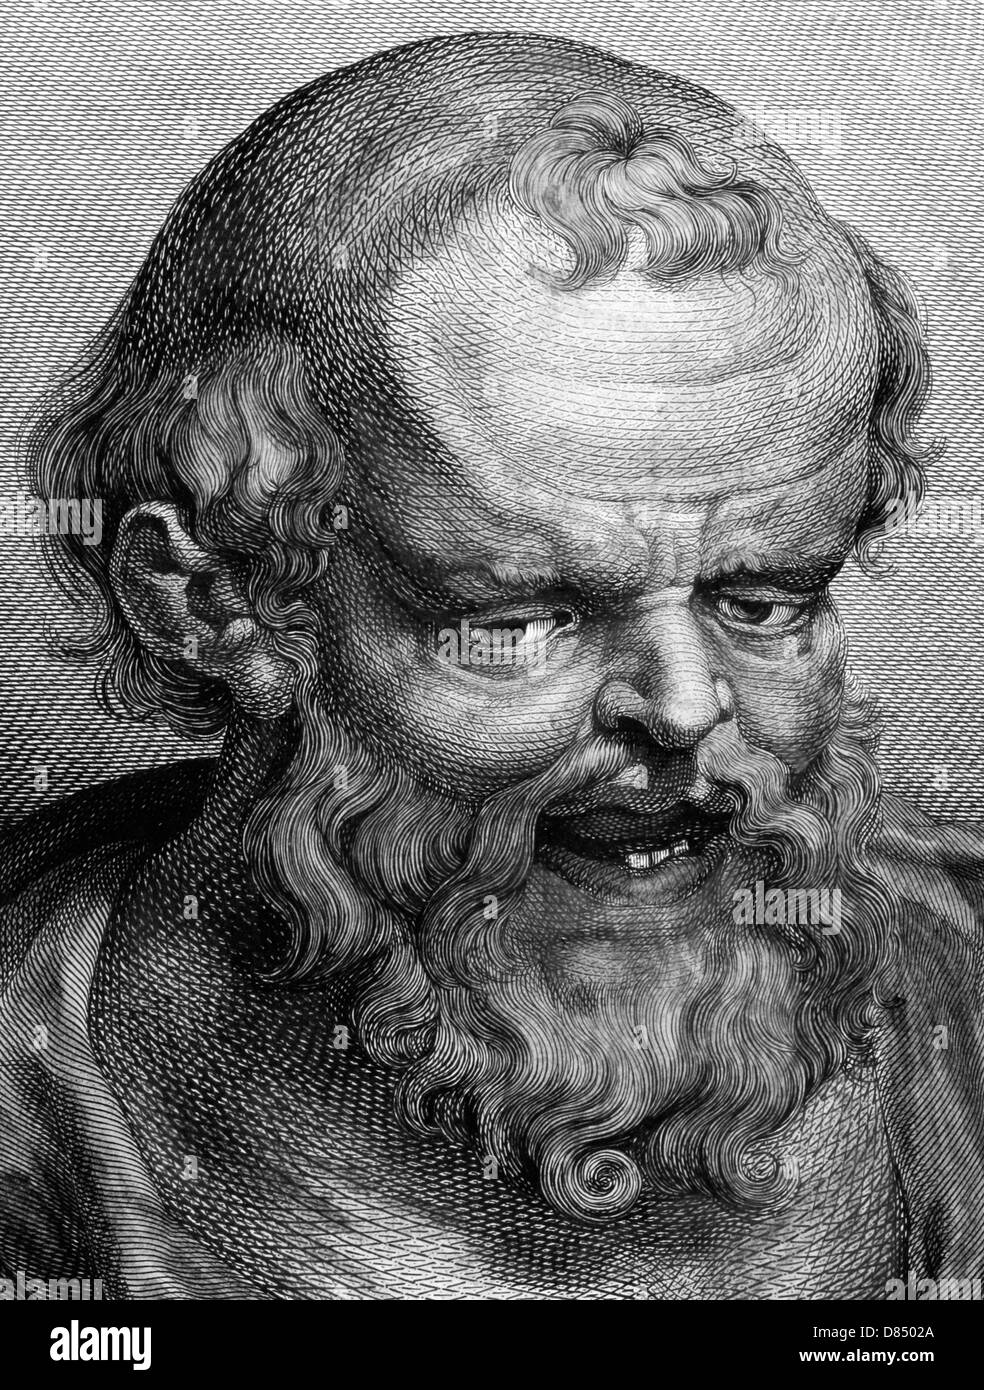 Democritus (460BC-370BC) on engraving from 1788. Ancient Greek philosopher. The most influental pre-ocratic. - Stock Image